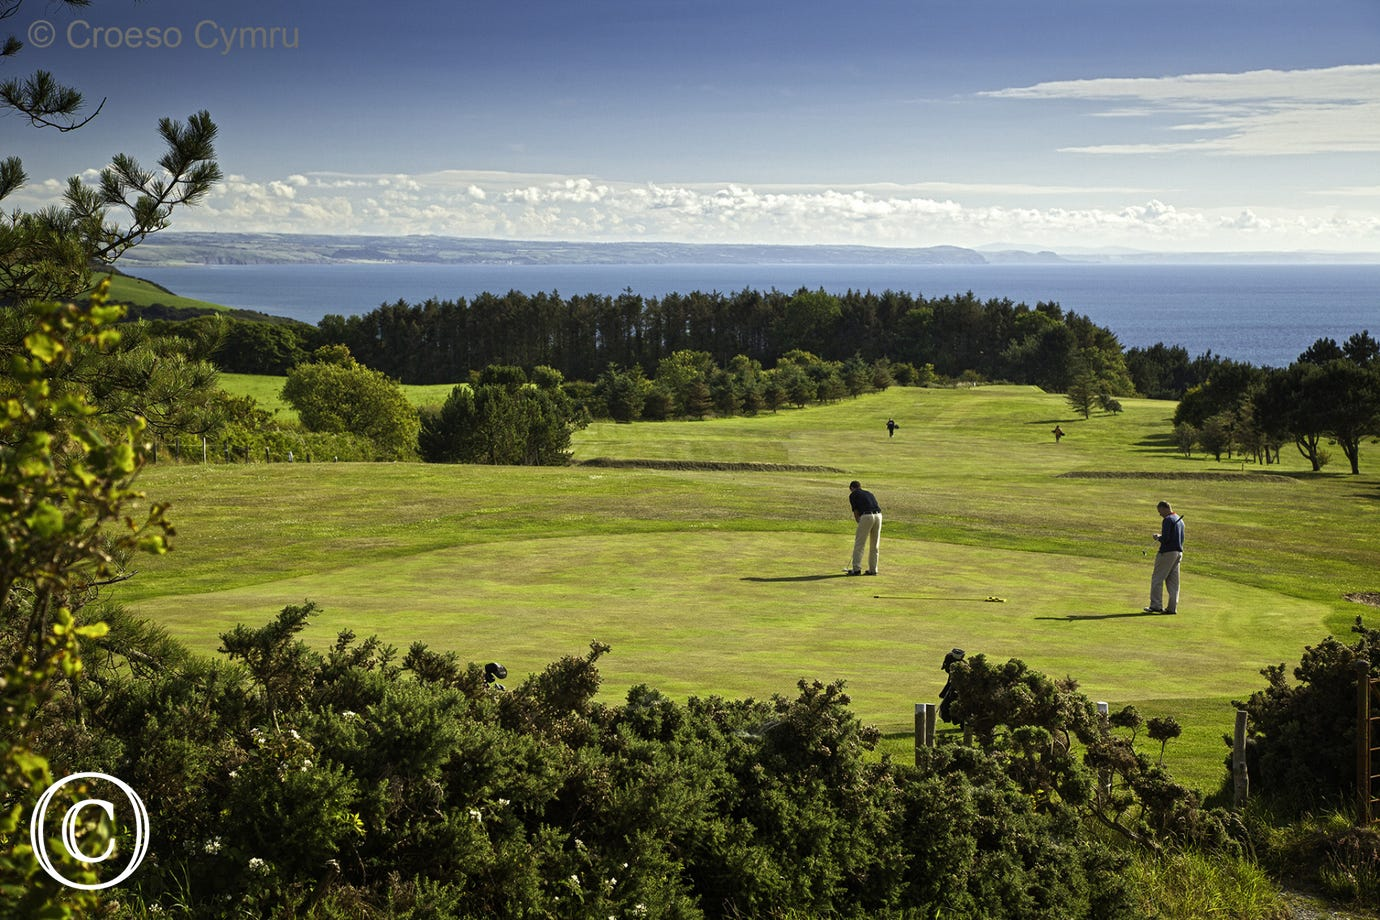 Aberystwyth's scenic Golf Course